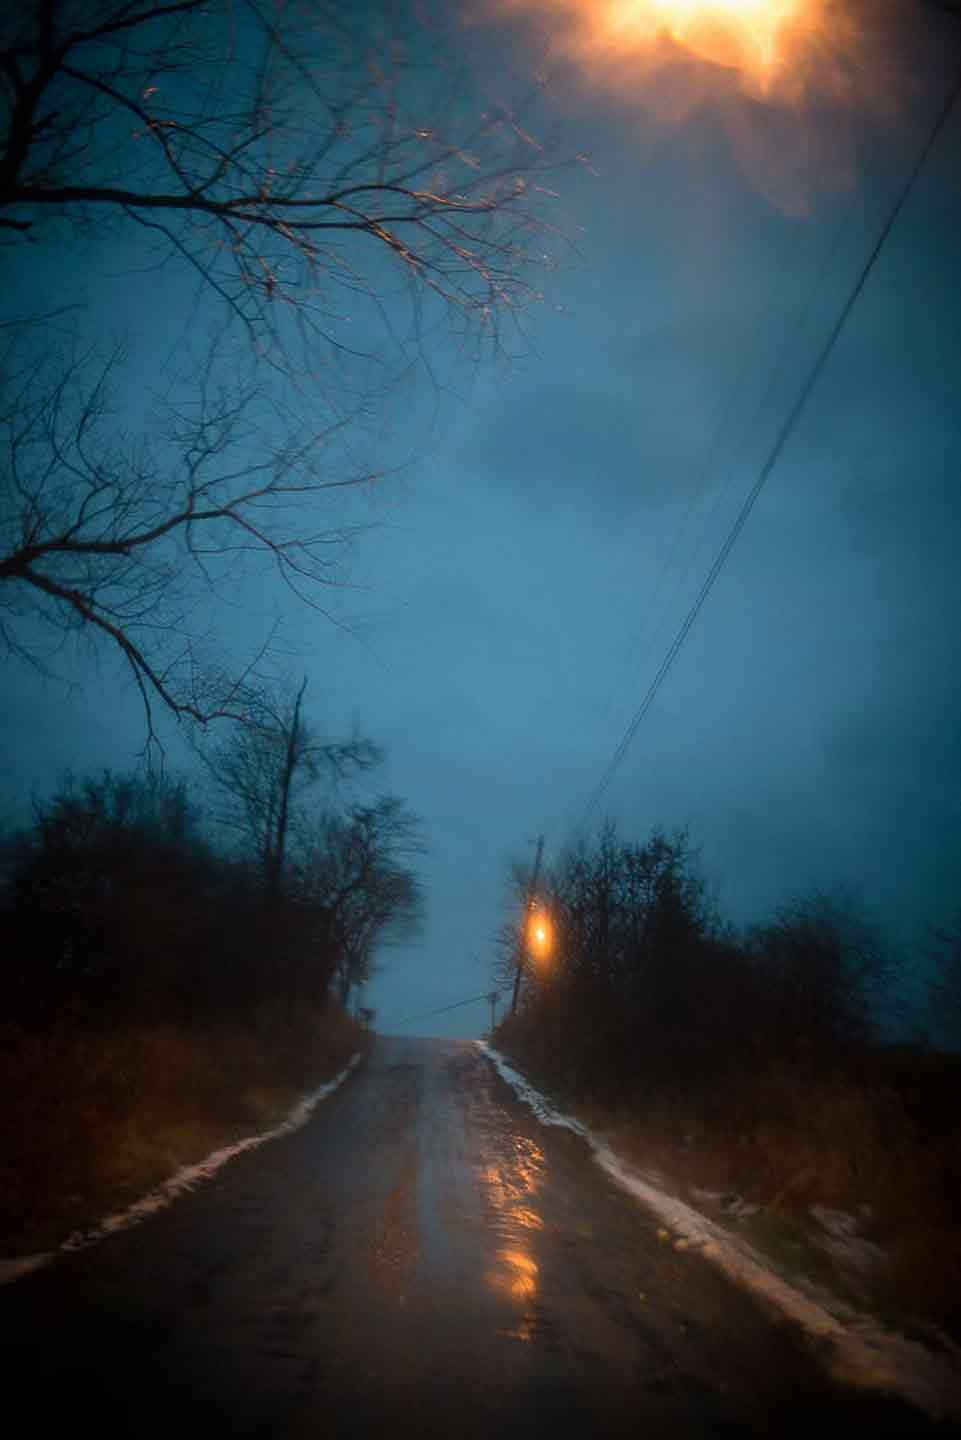 Todd Hido: Bright Black World, Deluxe Limited Edition Suite (with 15 Archival Pigment Prints) [SIGNED]